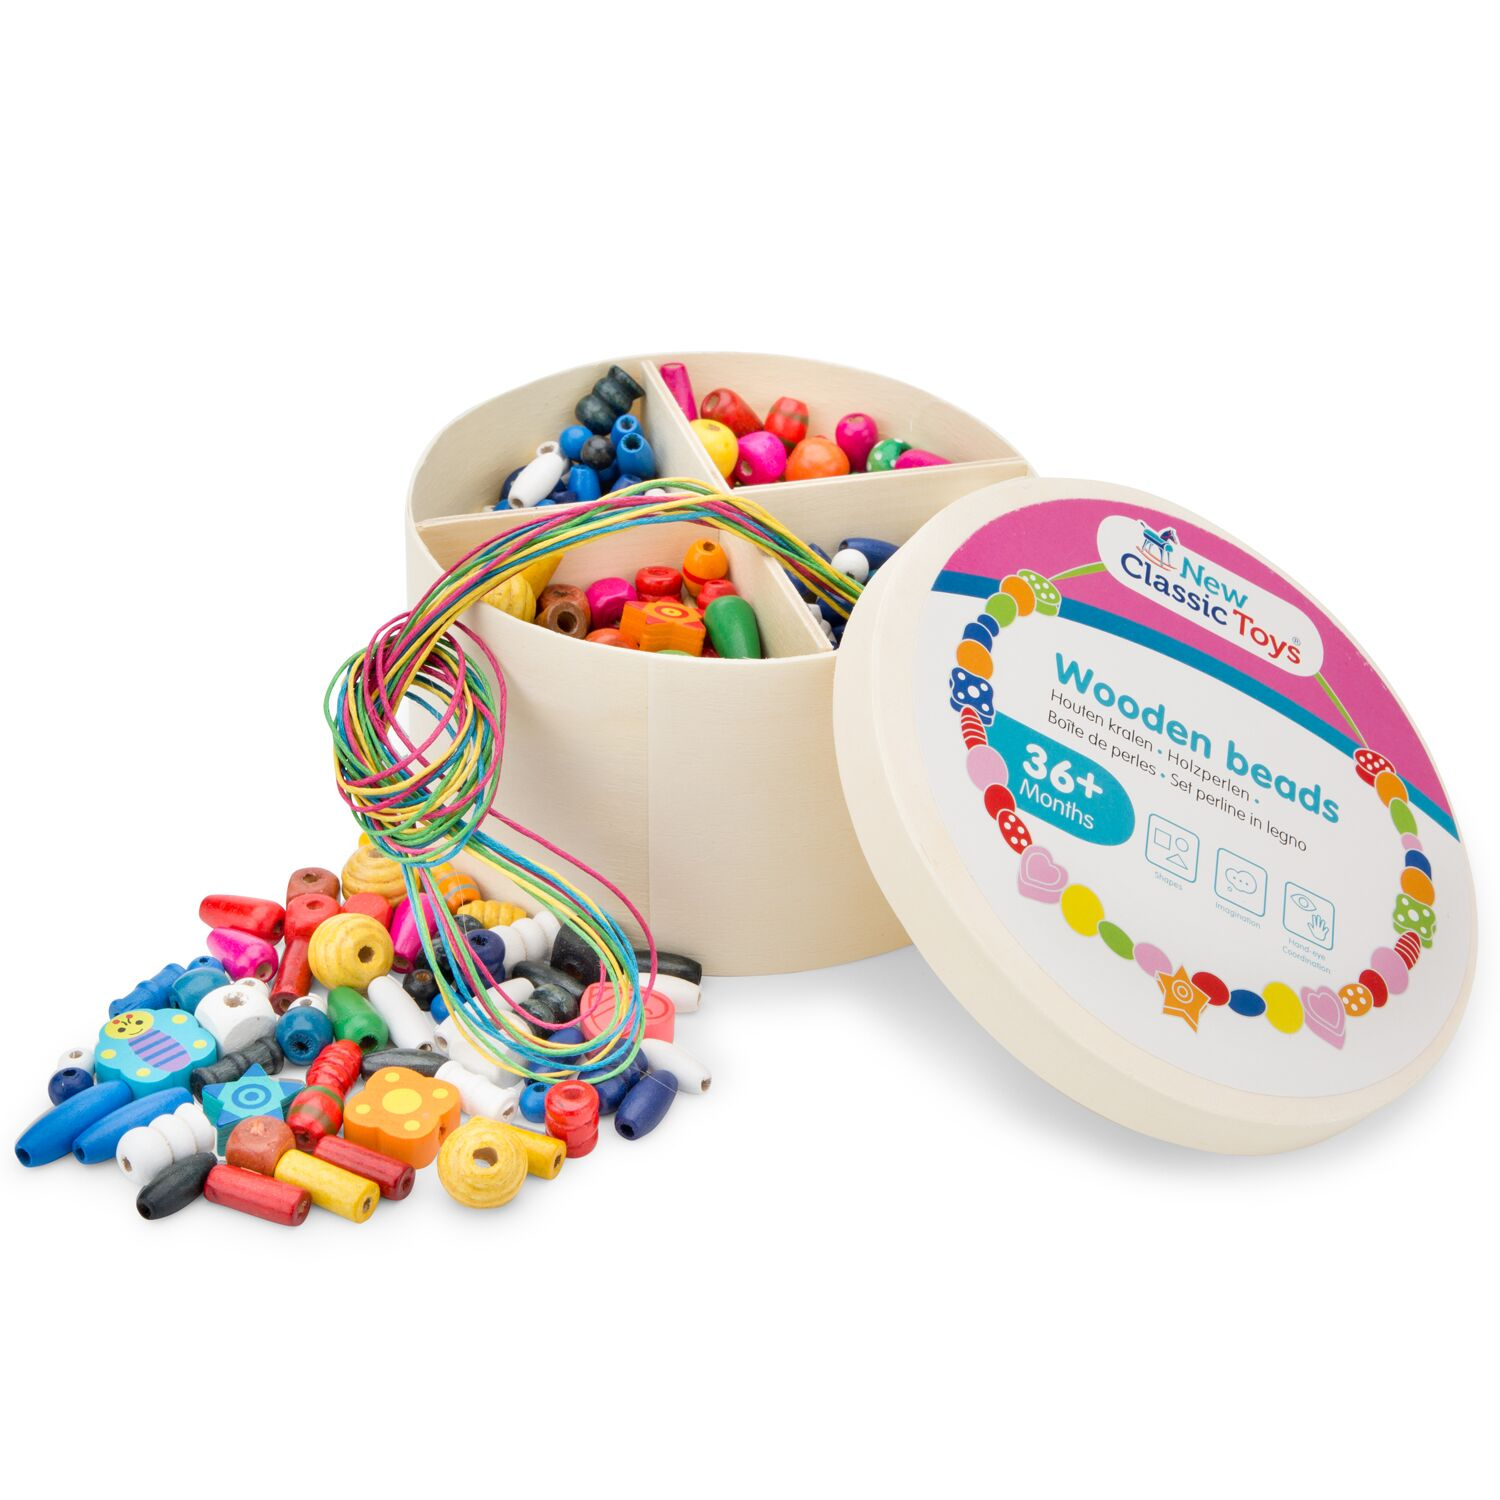 New Classic Toys - Wooden Beads 260 g (N10571)